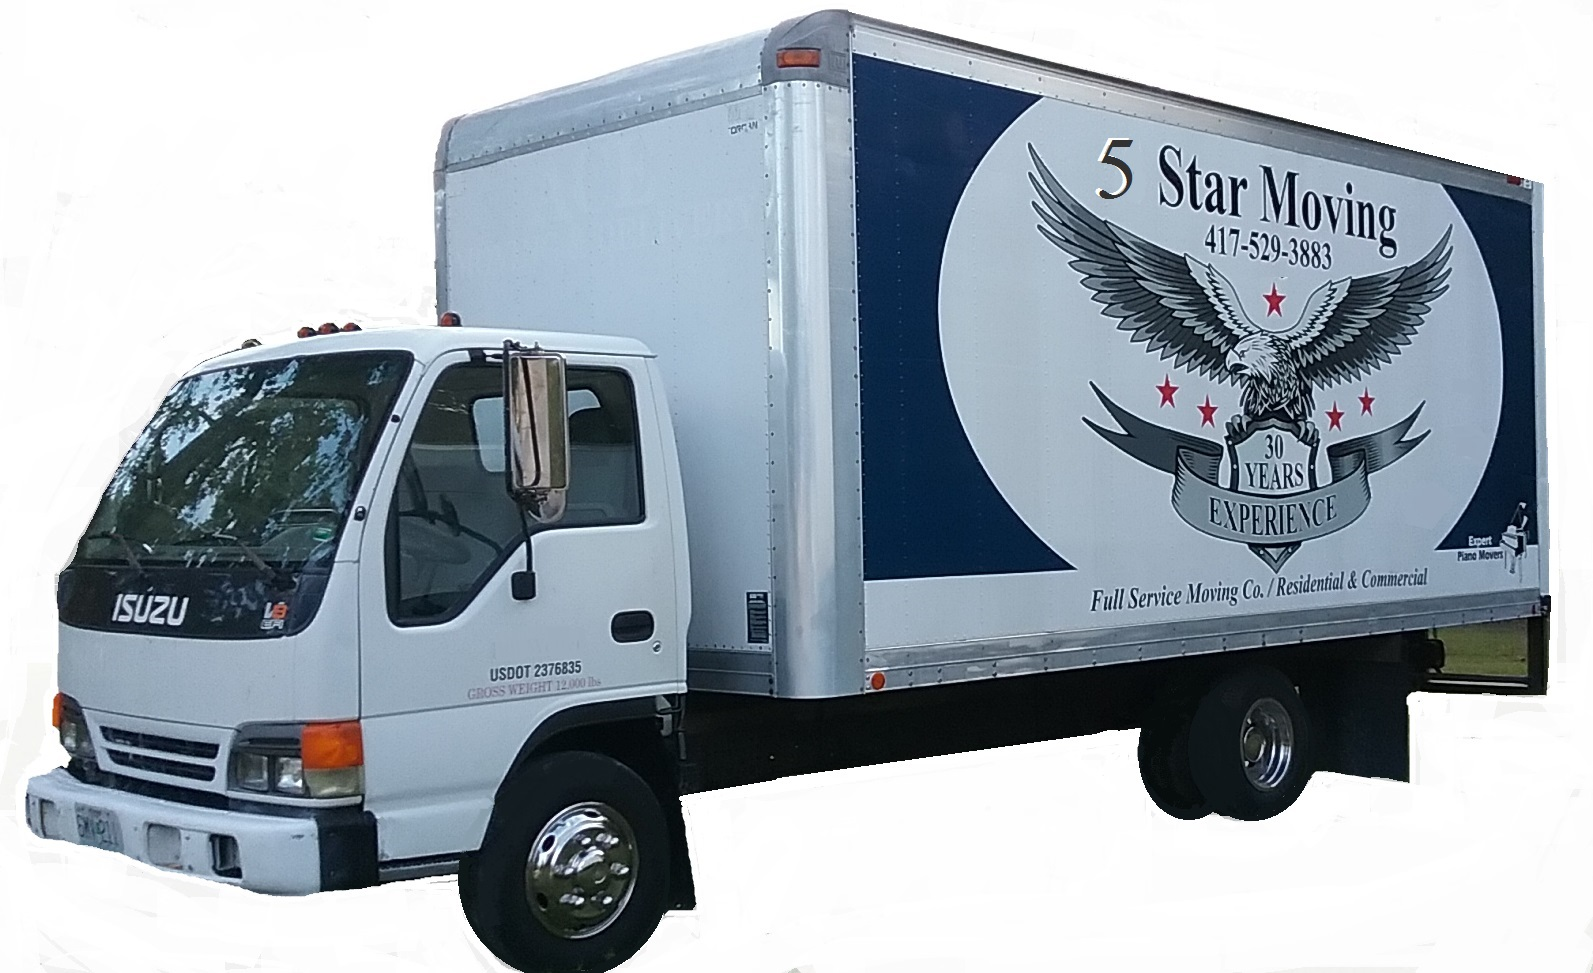 Missouri's Top Rated Local® Moving Service Companies Award Winner: 5 Star Moving